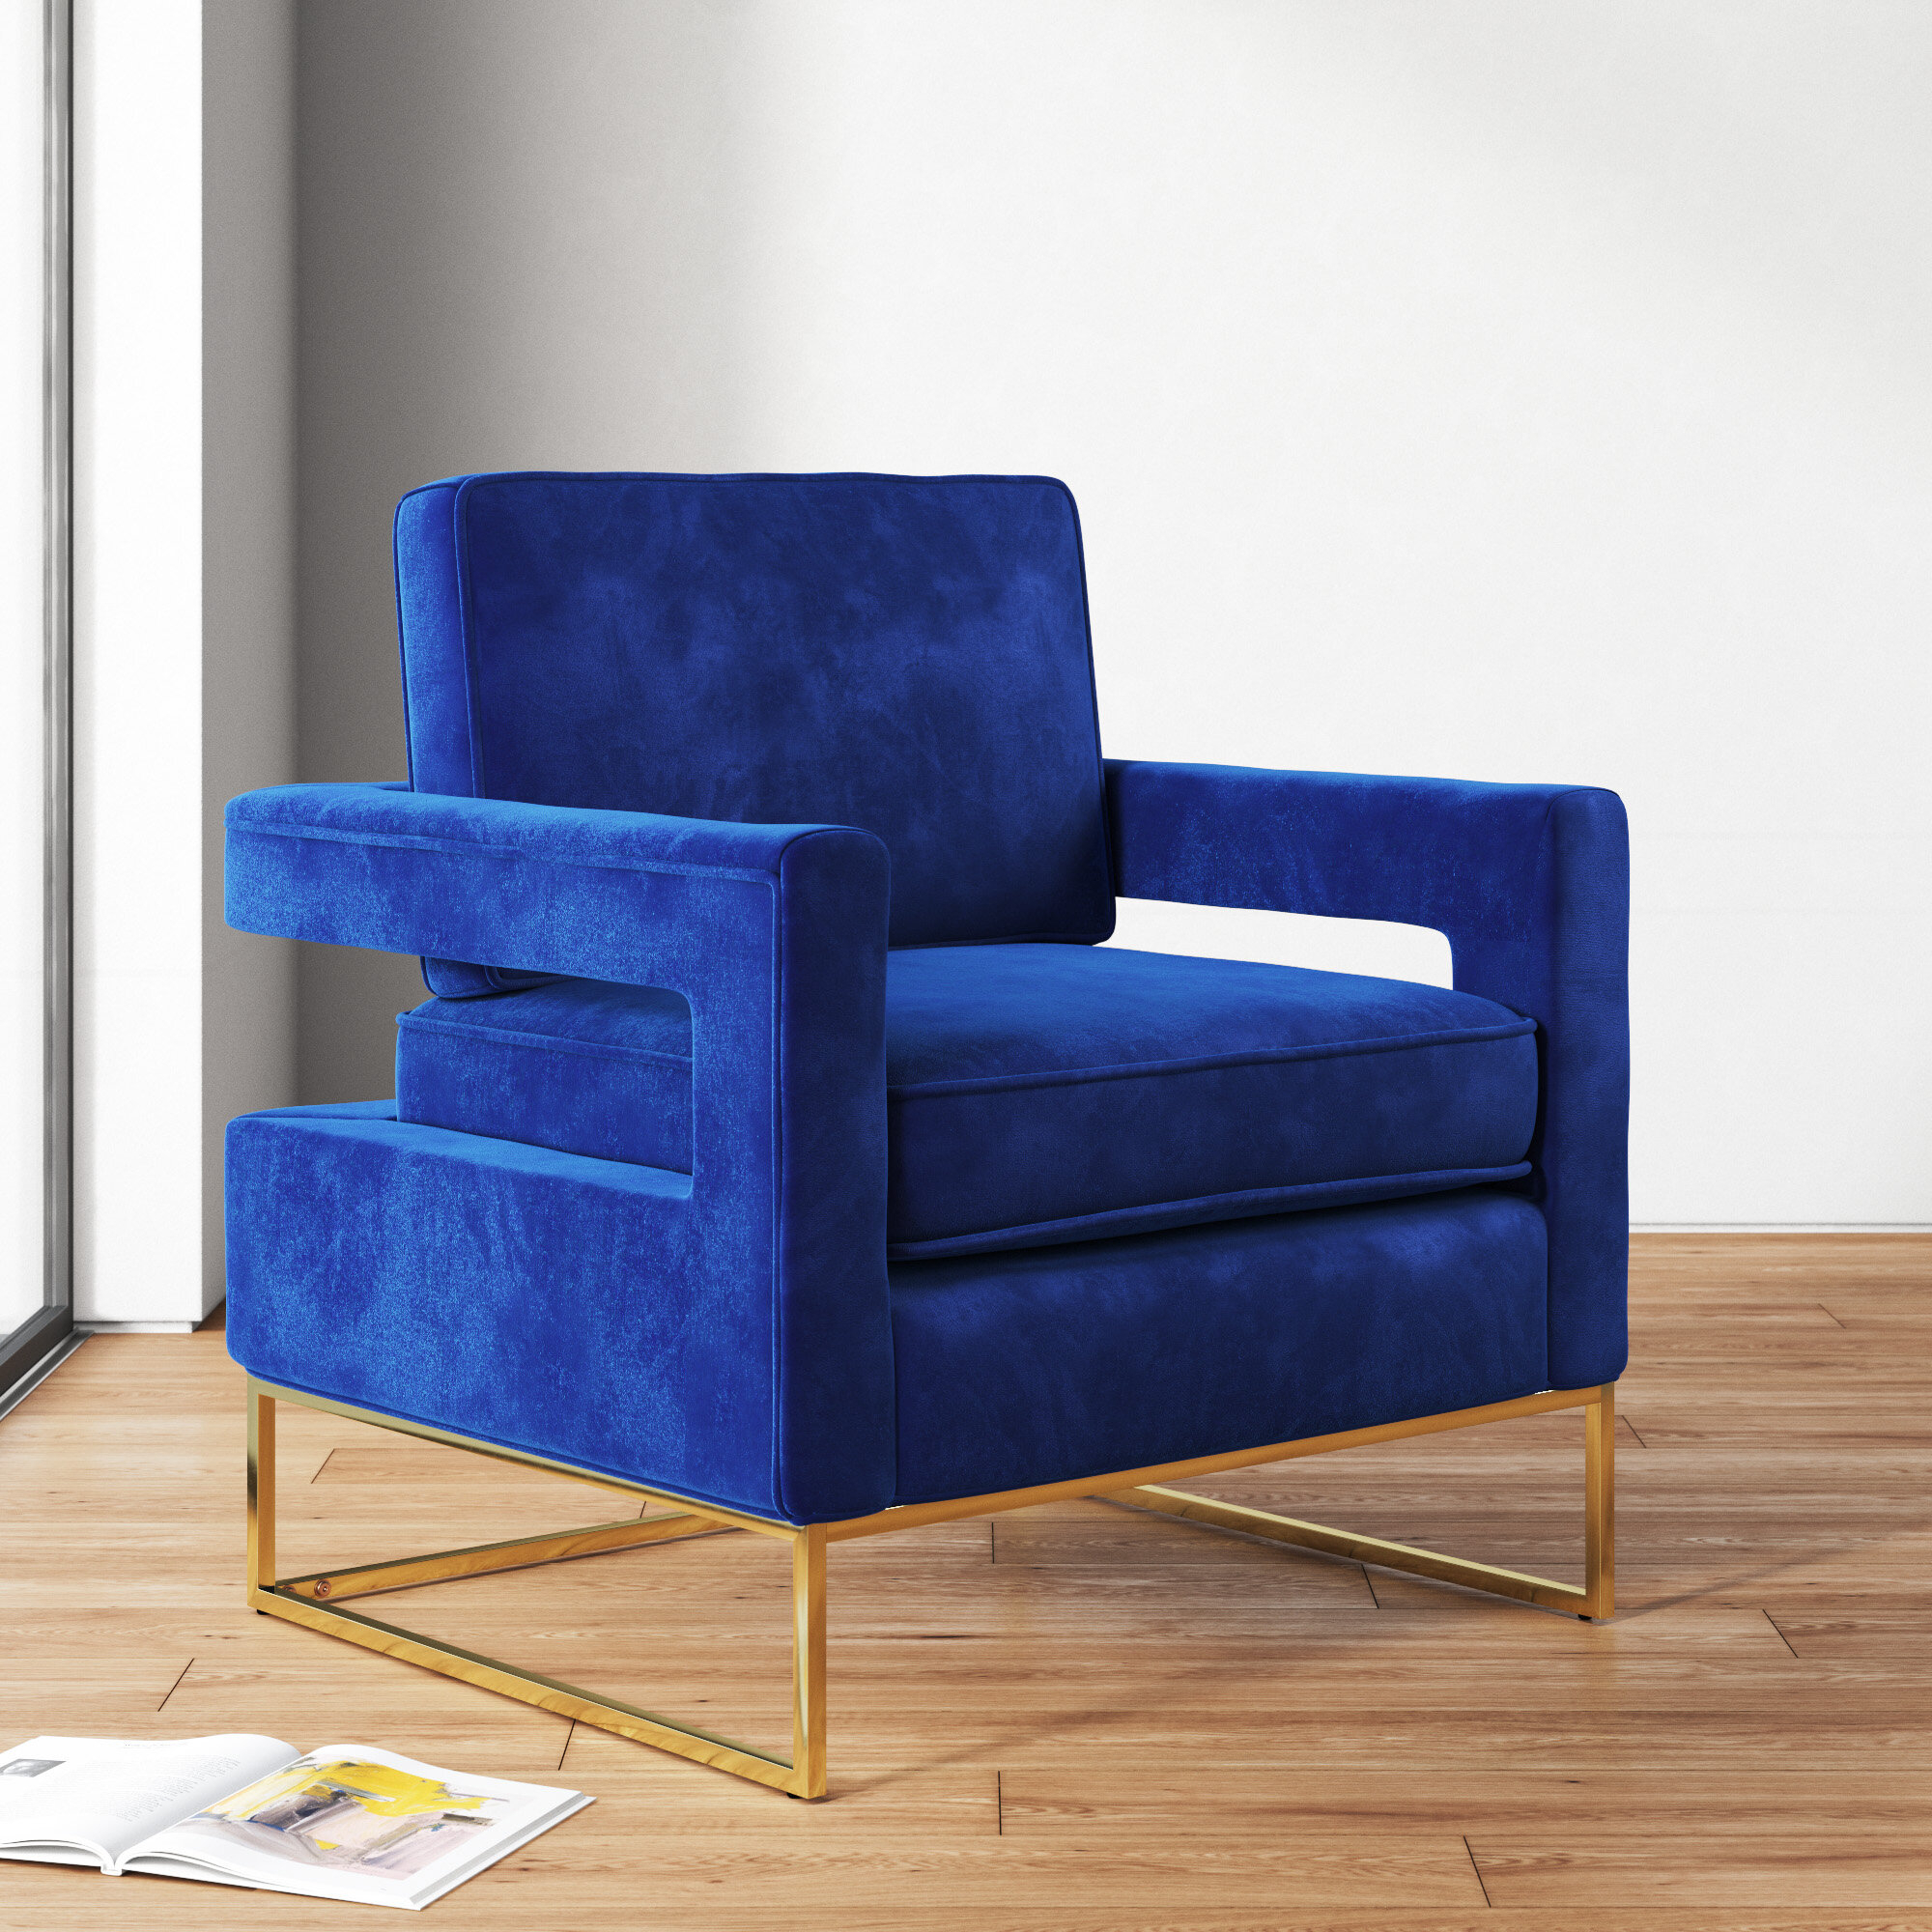 Arm Accent Chairs On Sale | Wayfair Within Ragsdale Armchairs (View 13 of 15)